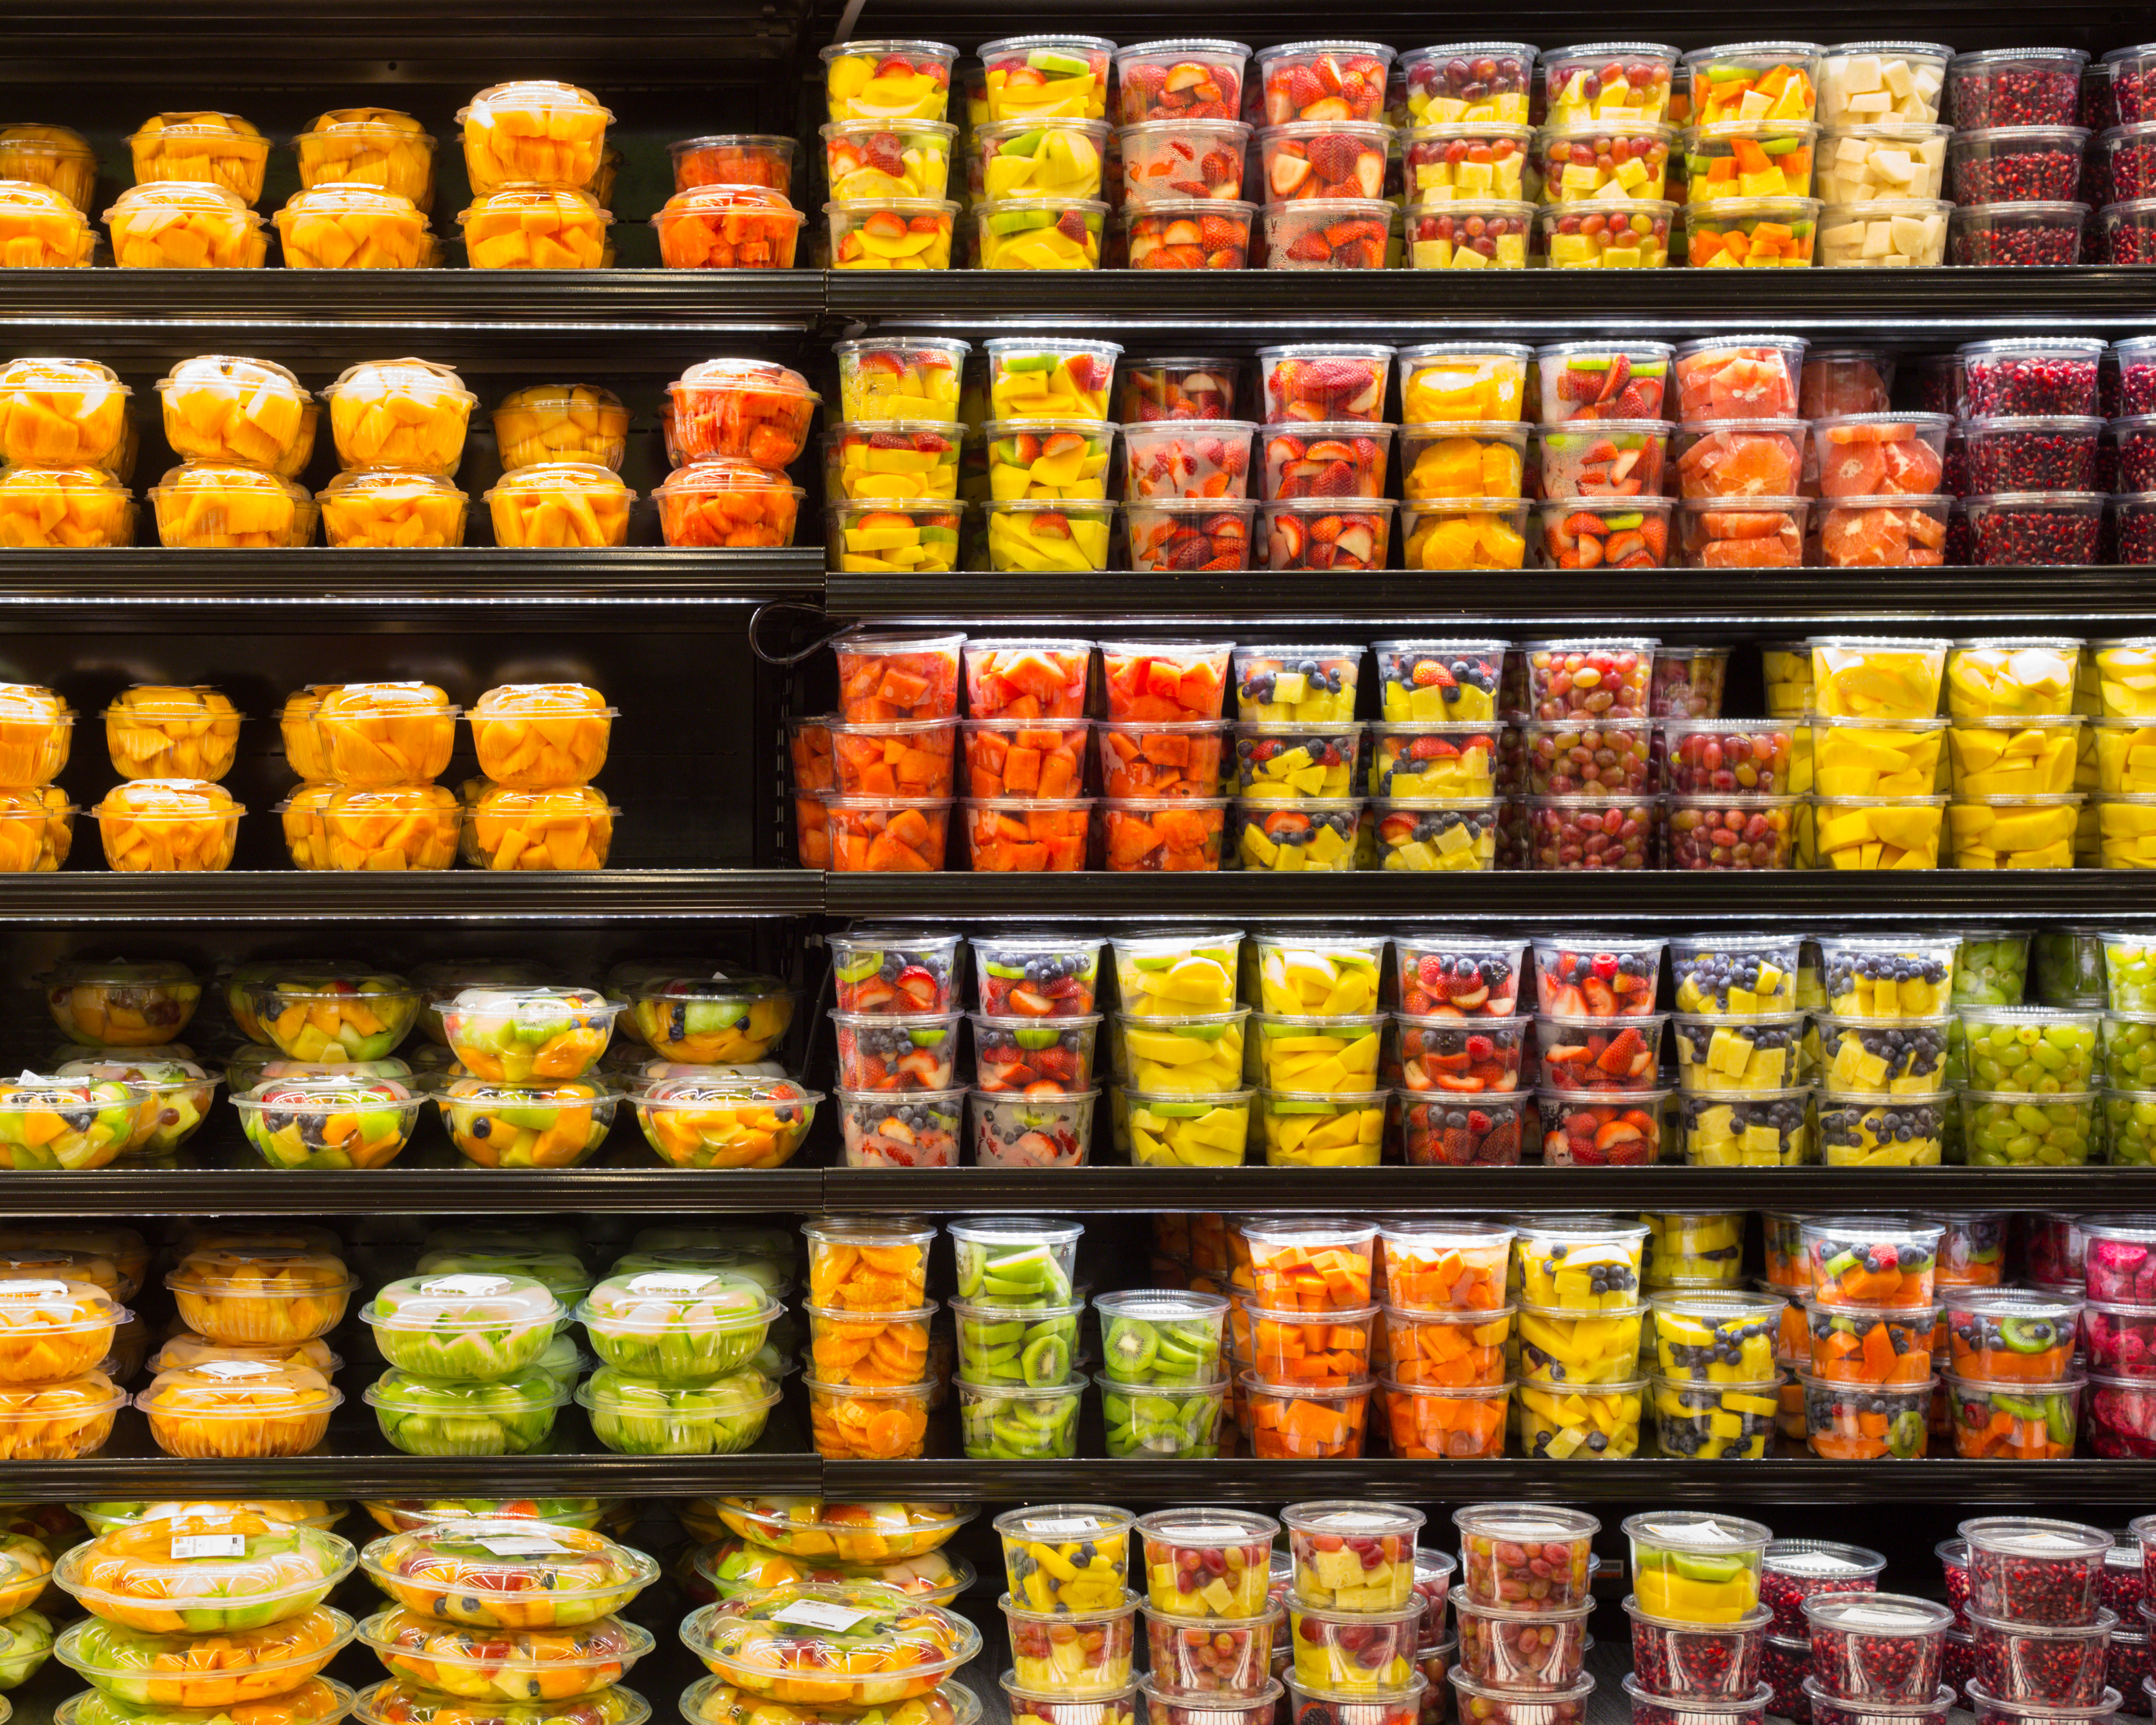 Assortment of cut fruit in containers on display for sale at FNGs remain popular Grab N' Go items at all stores.